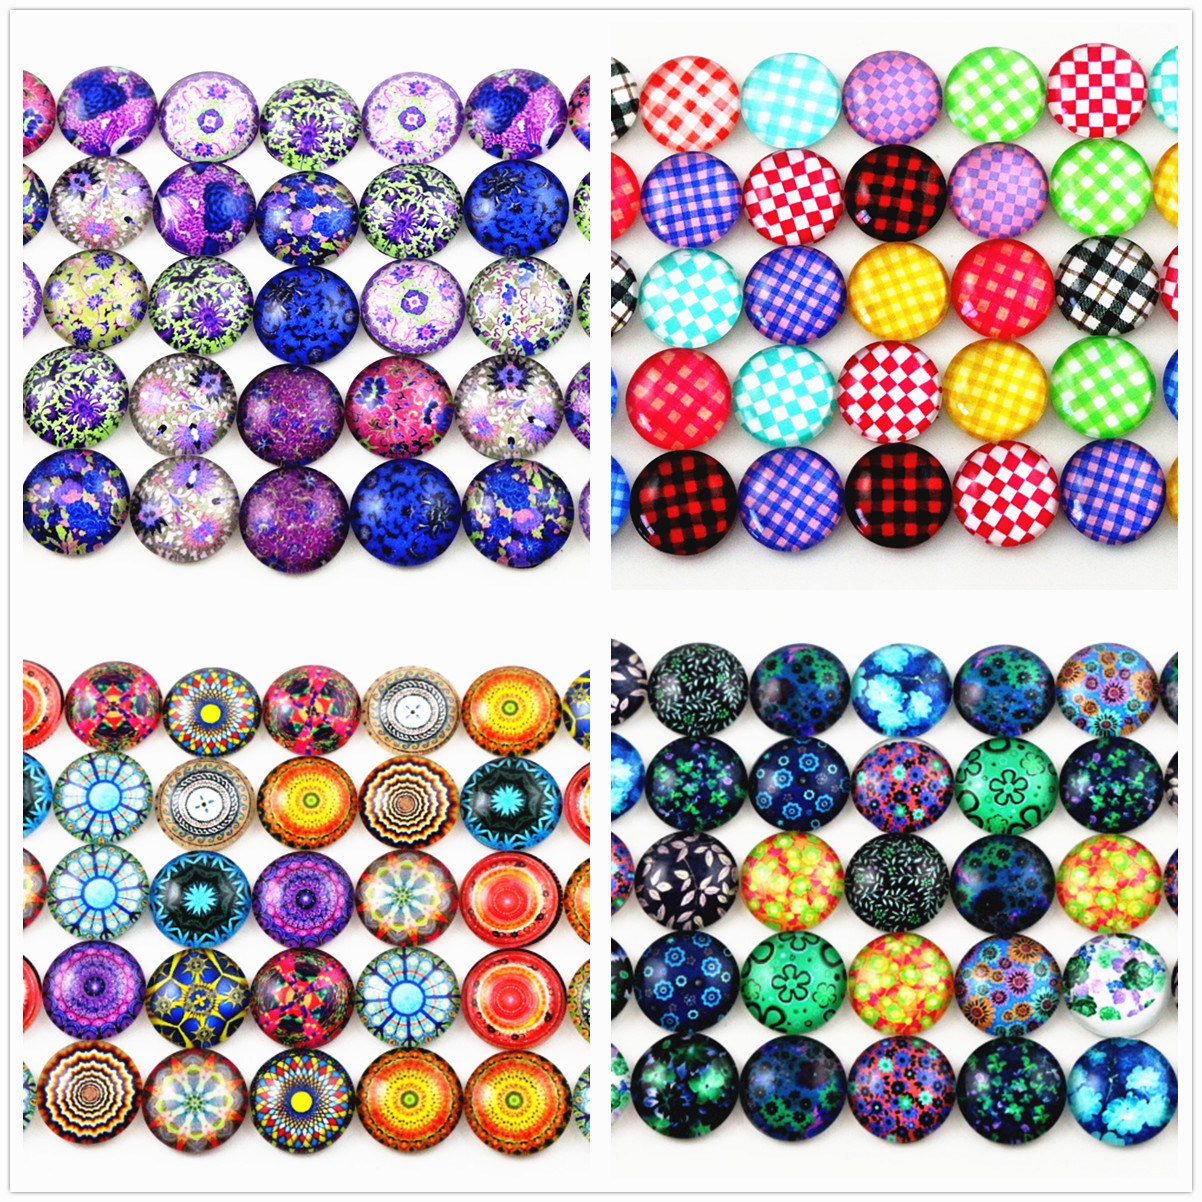 Hot Sale 50pcs 12mm  14 Style New Fashion Mixed Flower Handmade Photo Glass Cabochons Pattern Domed Jewelry Accessories Supplies